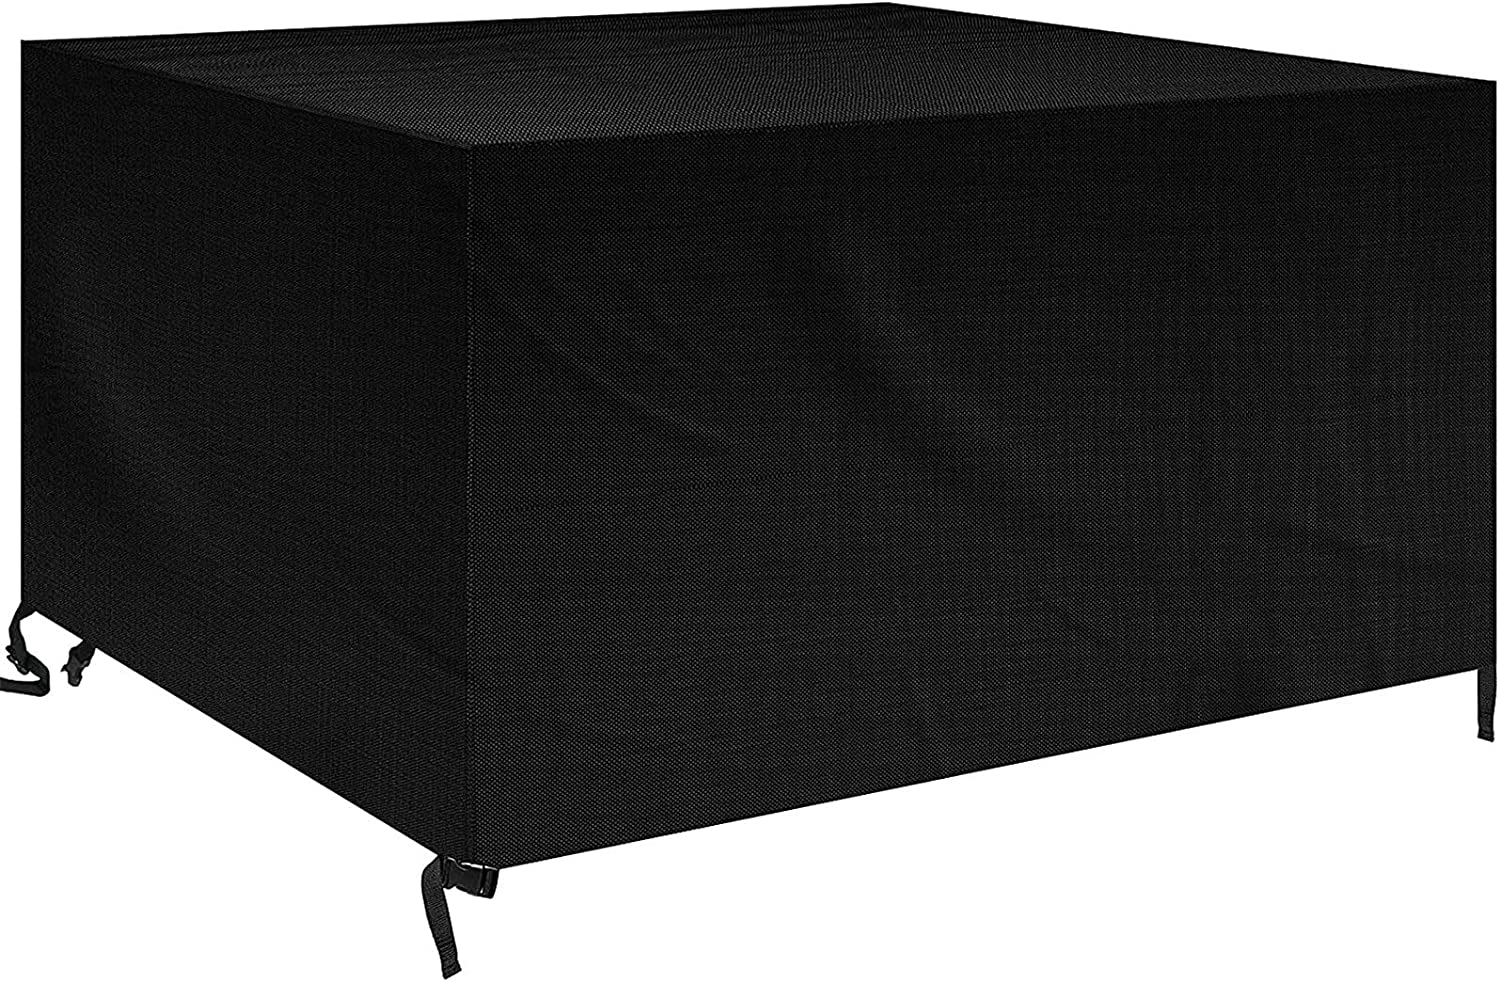 CHLDDHC Garden Furniture Cover for Protective Max 46% OFF Furni Gorgeous